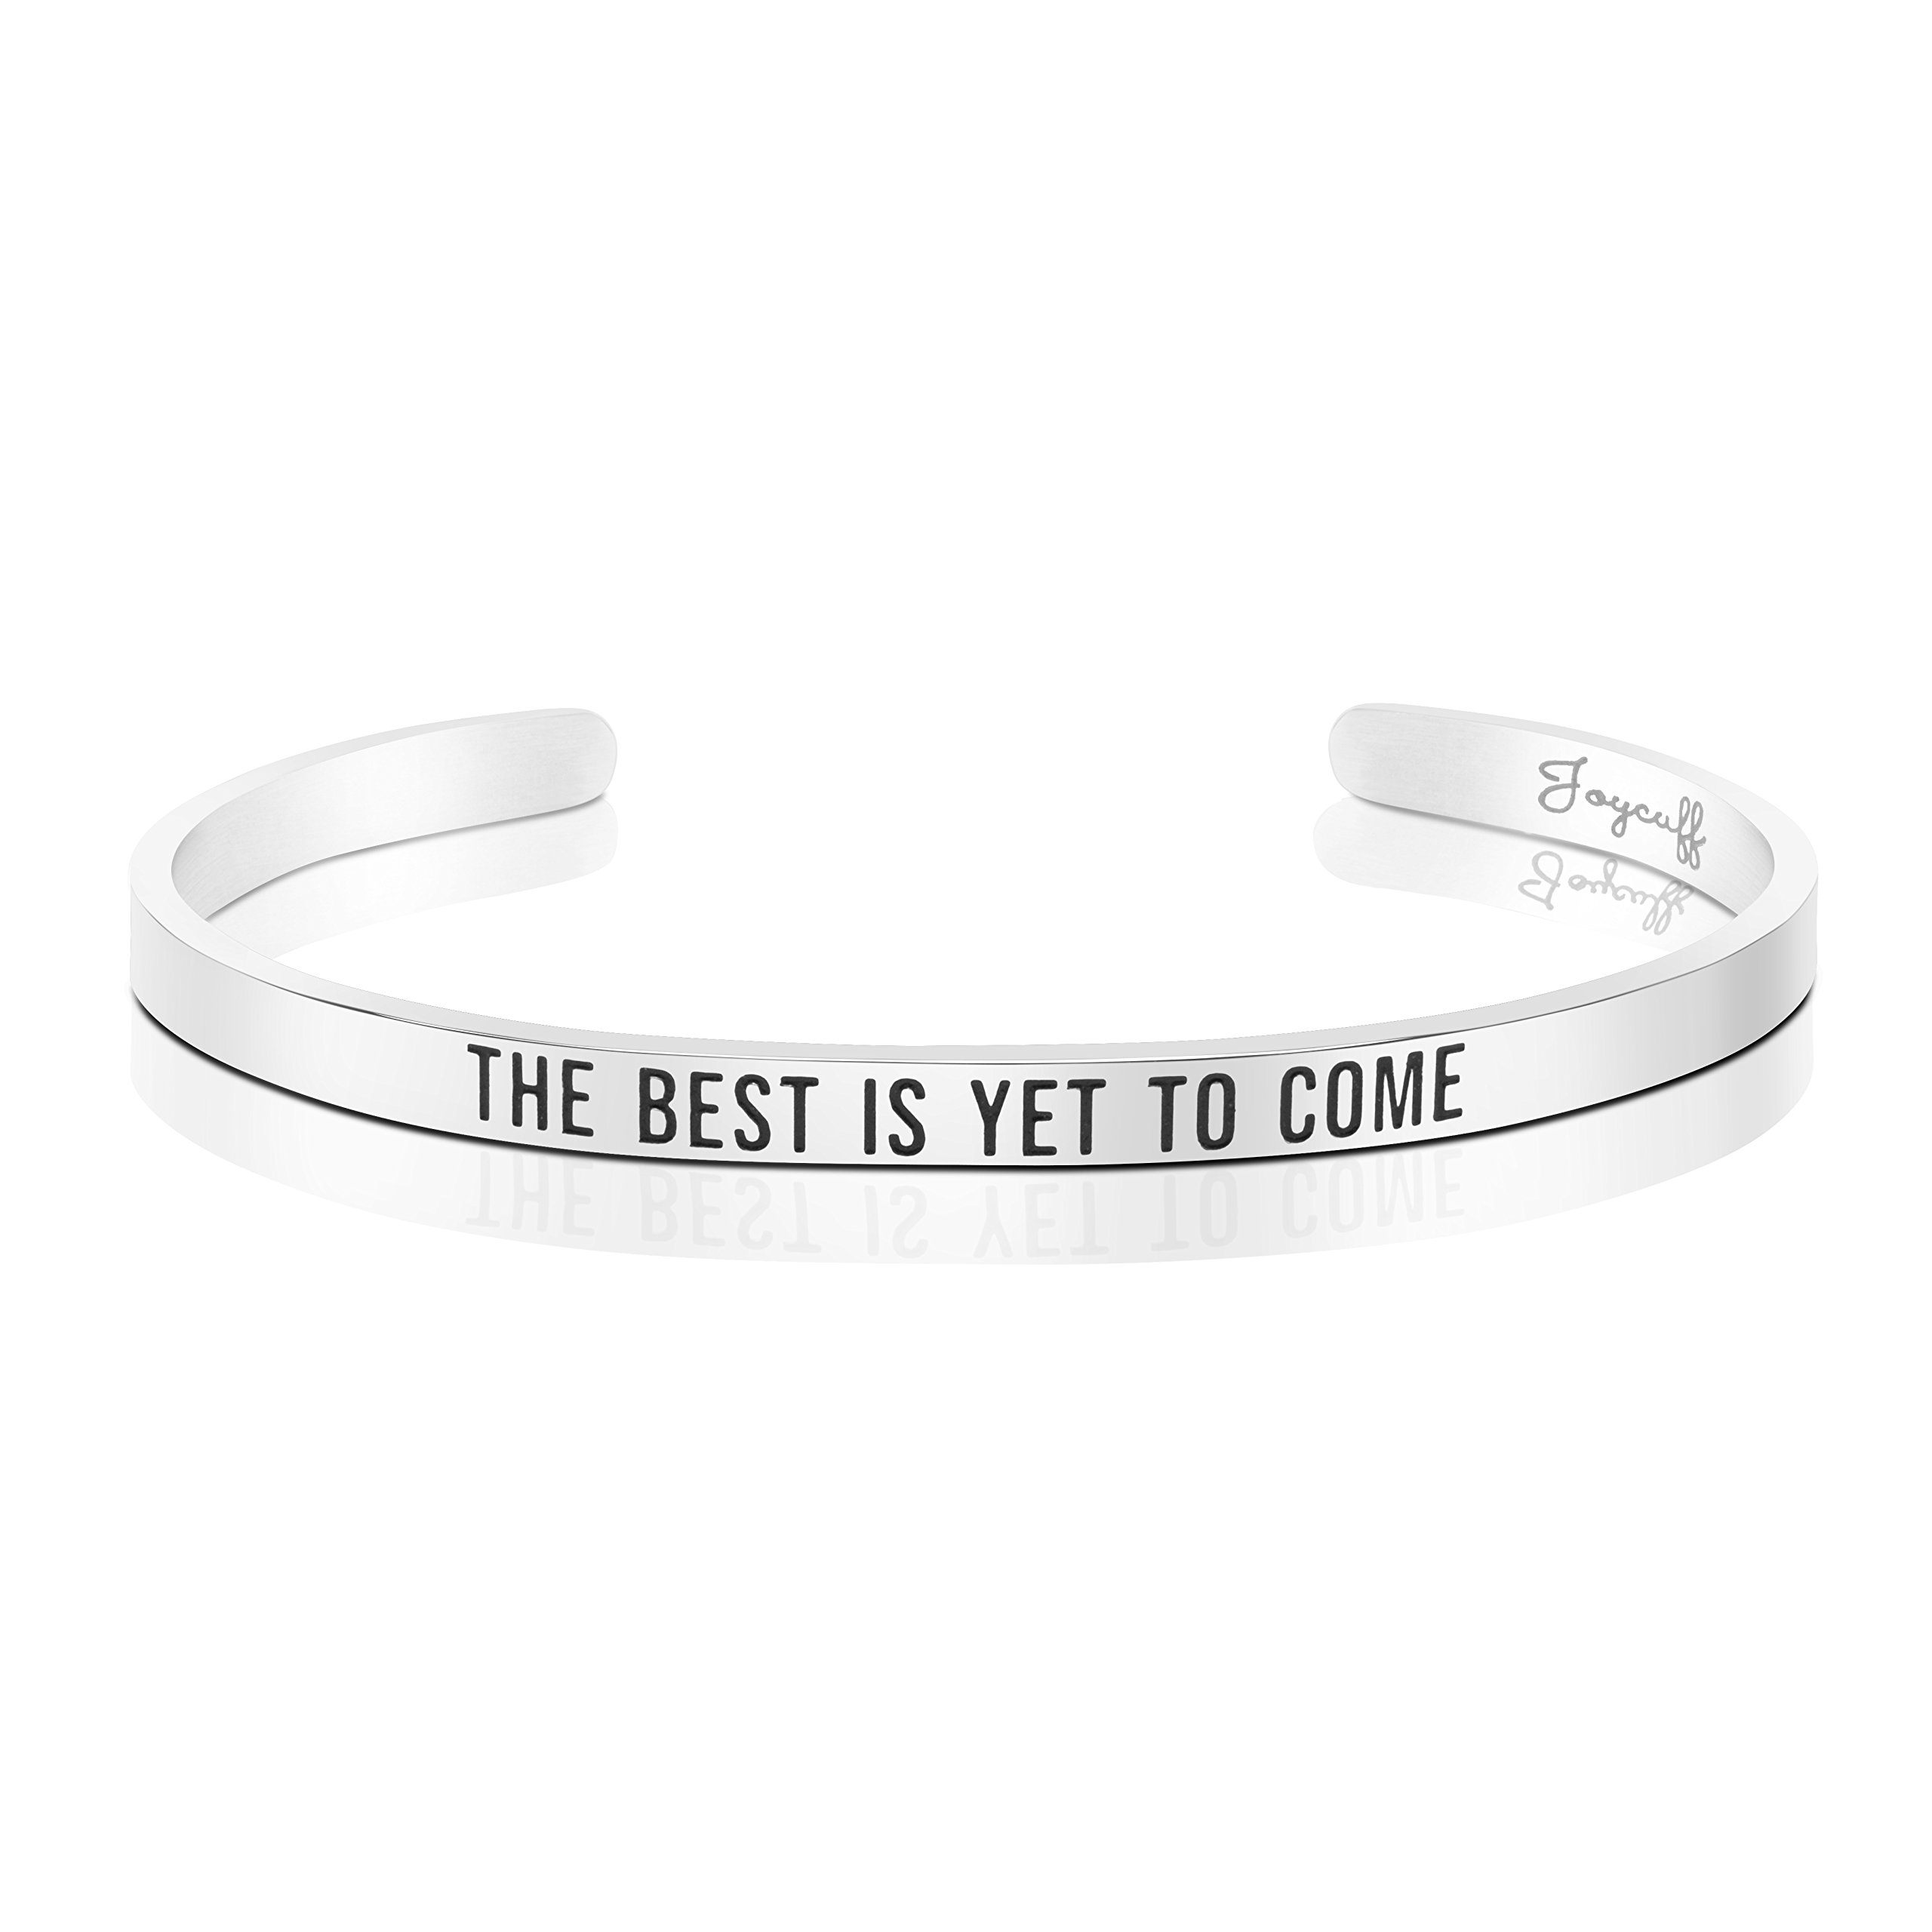 Joycuff Gifts for Her Mantra Cuff Bracelets for Women Daily Reminder Motivational Jewelry The best is yet to come